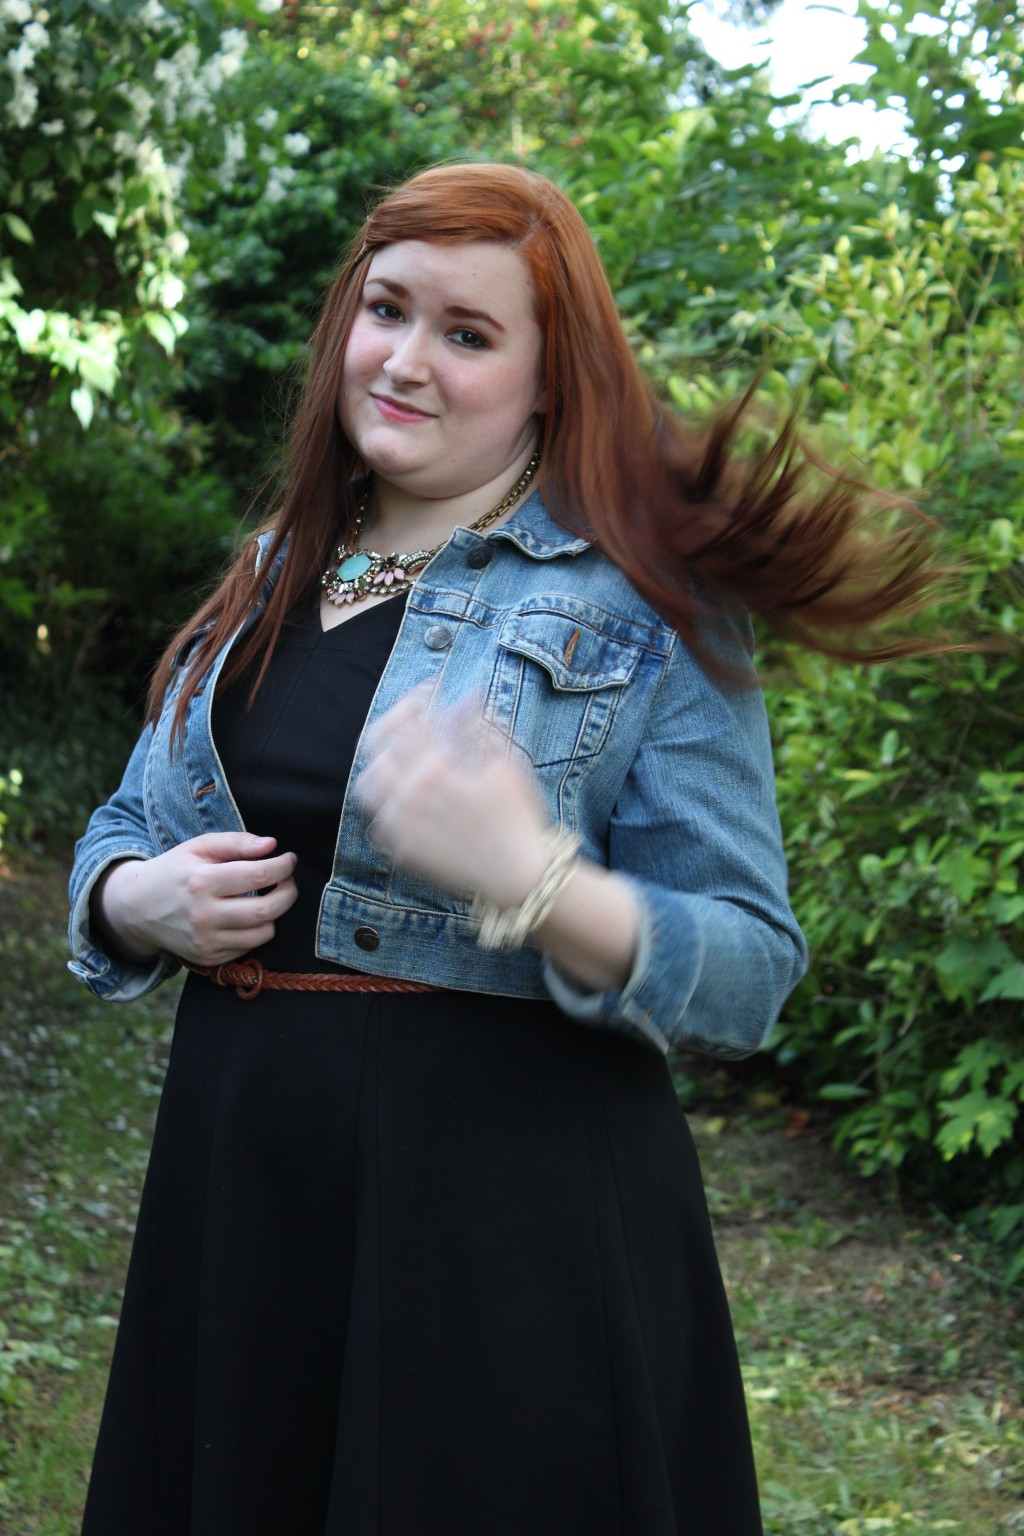 Hair Flip action shot